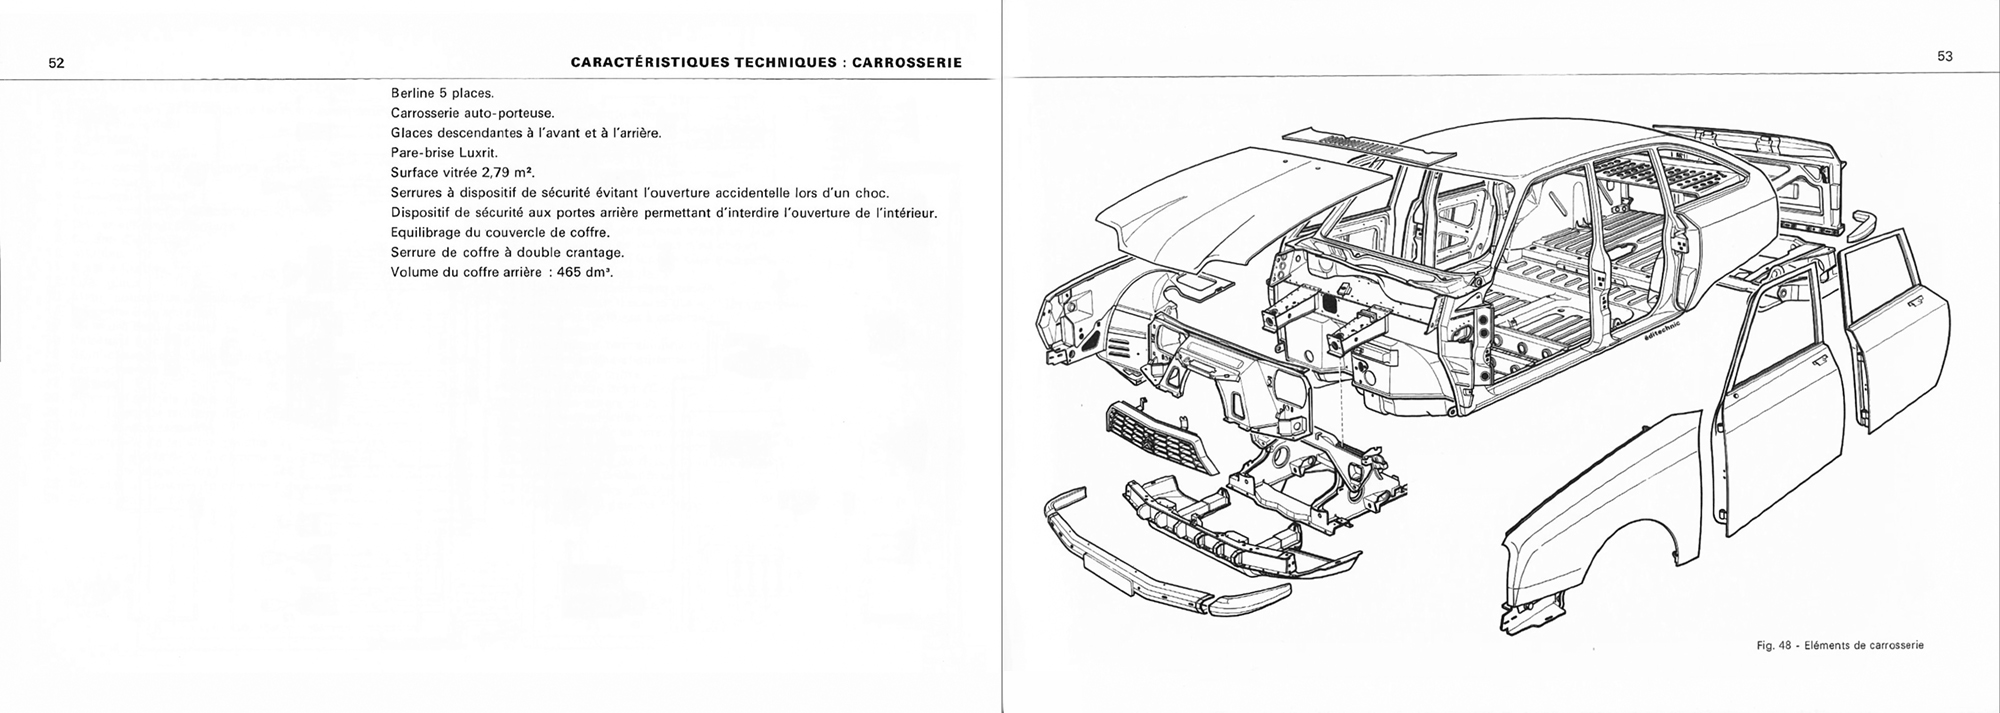 1971 Citroën GS Notice d'emploi (owner's manual) #2